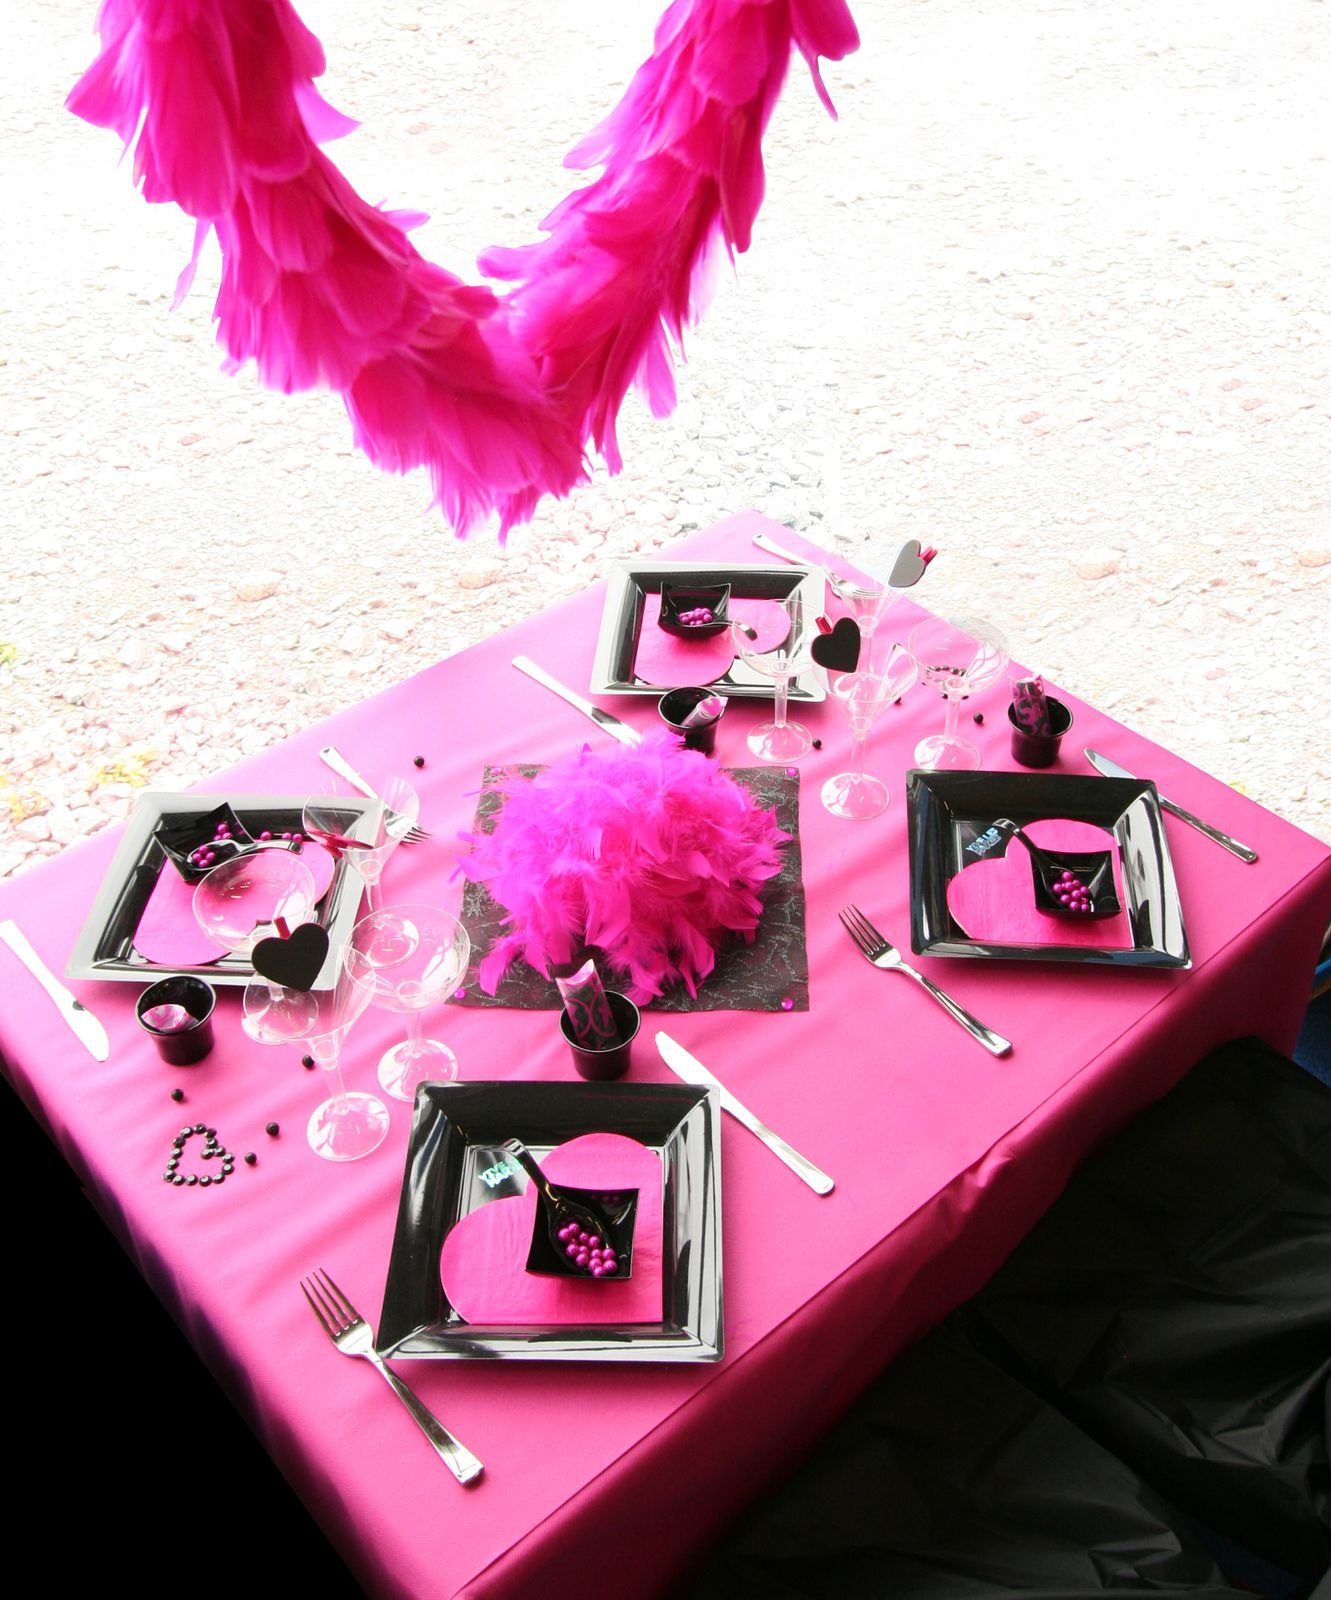 D coration de table fuchsia et noir d corations f tes for Deco table rose et noir